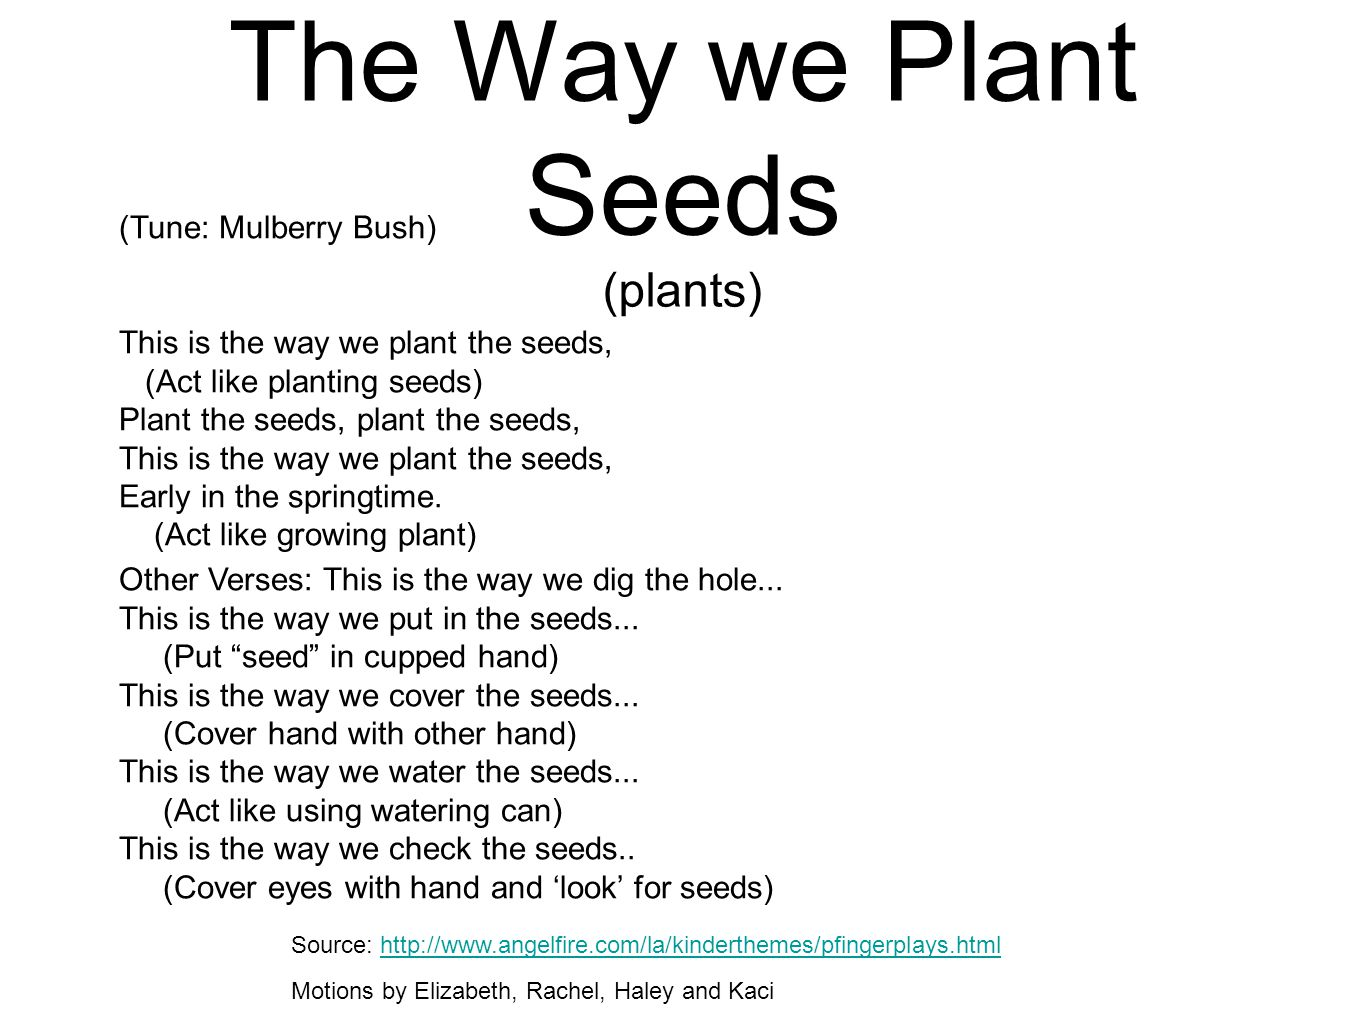 The Way we Plant Seeds (plants) (Tune: Mulberry Bush) This is the way we plant the seeds, (Act like planting seeds) Plant the seeds, plant the seeds,